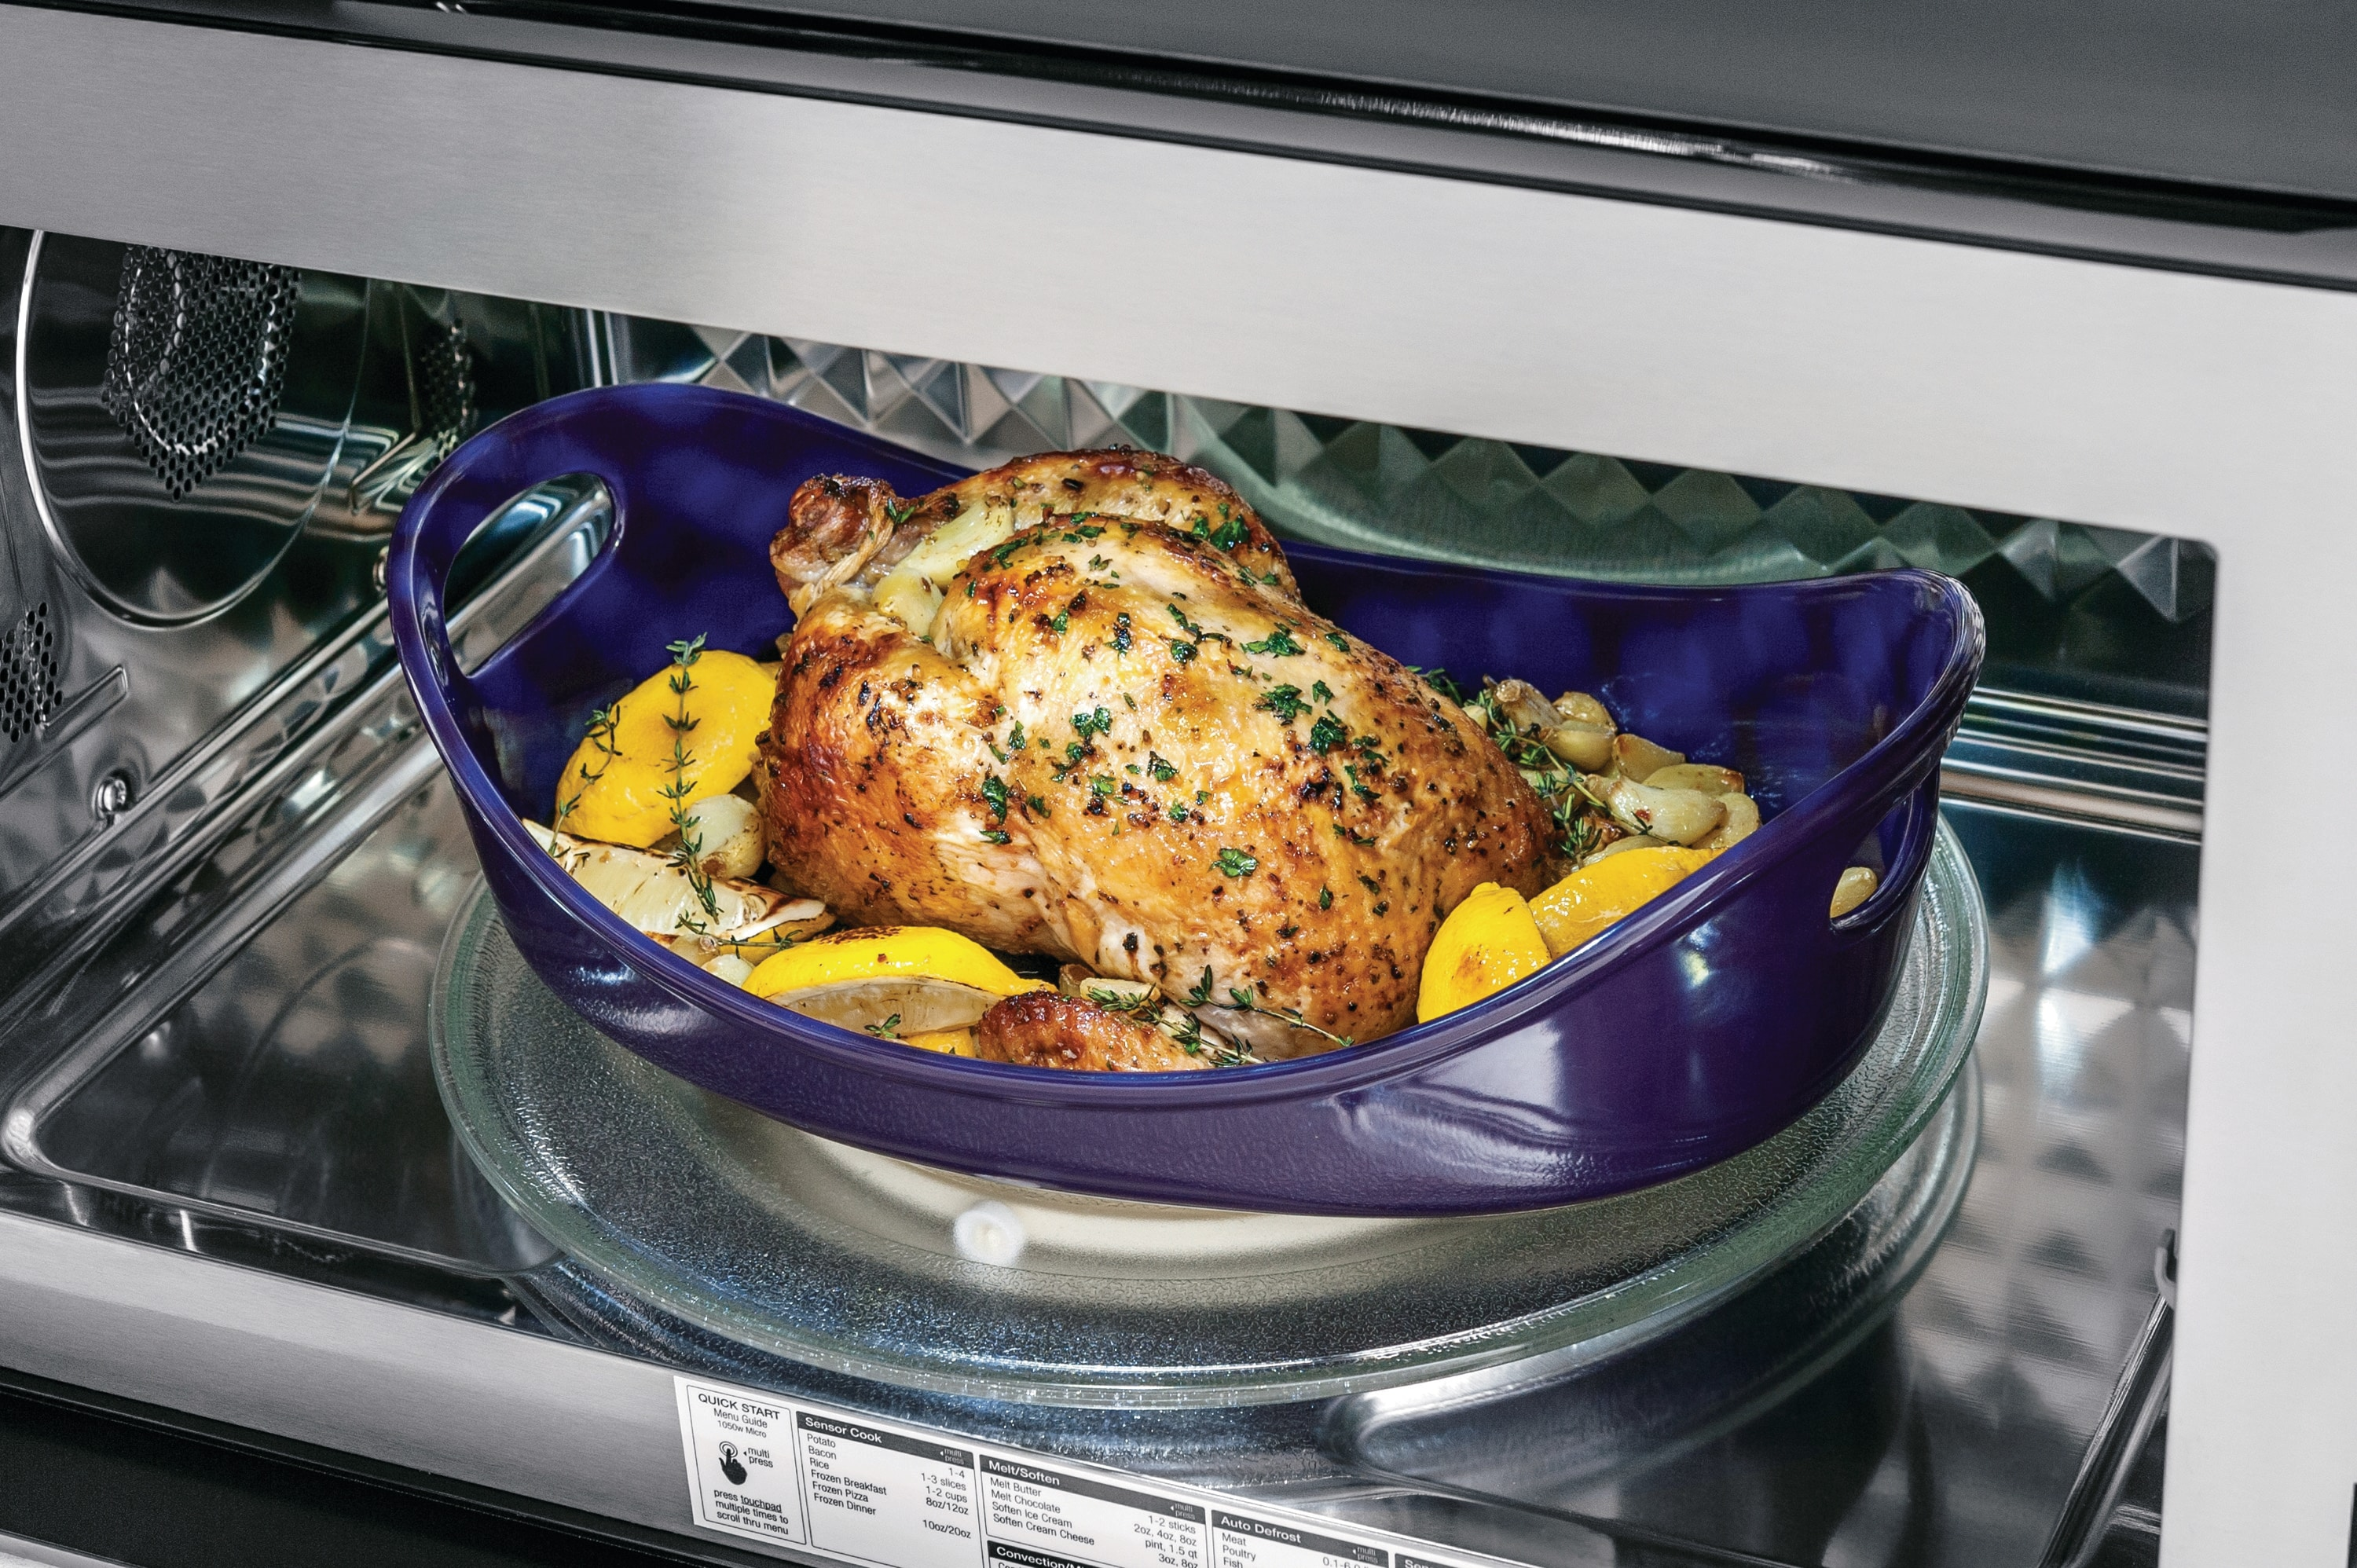 1.8 Cu. Ft. 2-In-1 Over-The-Range Convection Microwave